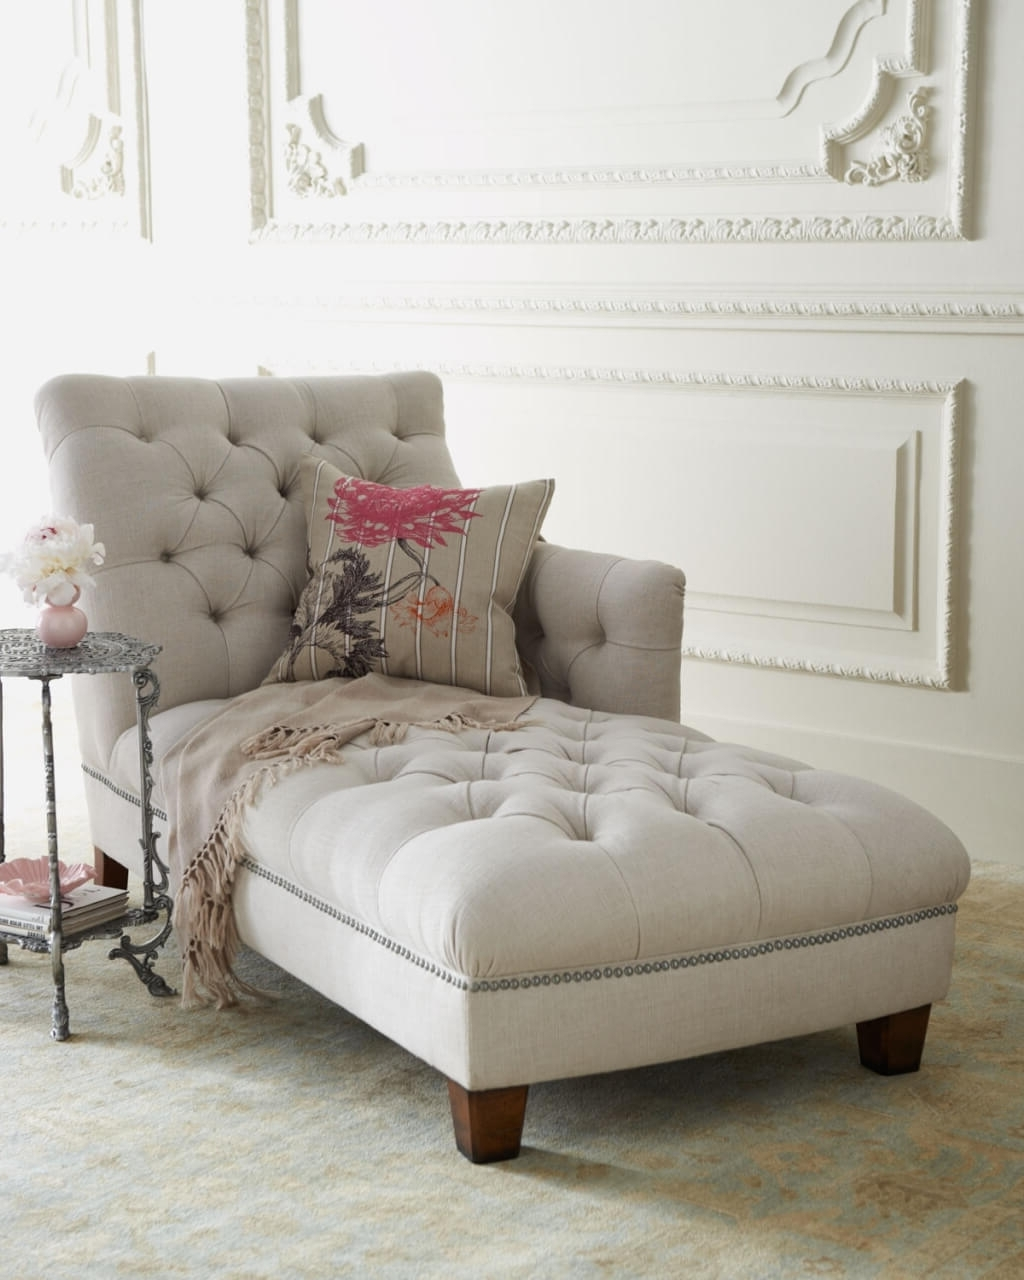 Round Chaises In Popular Furniture: Relaxing White Tufted Chaise Lounge With Small Round (View 10 of 15)